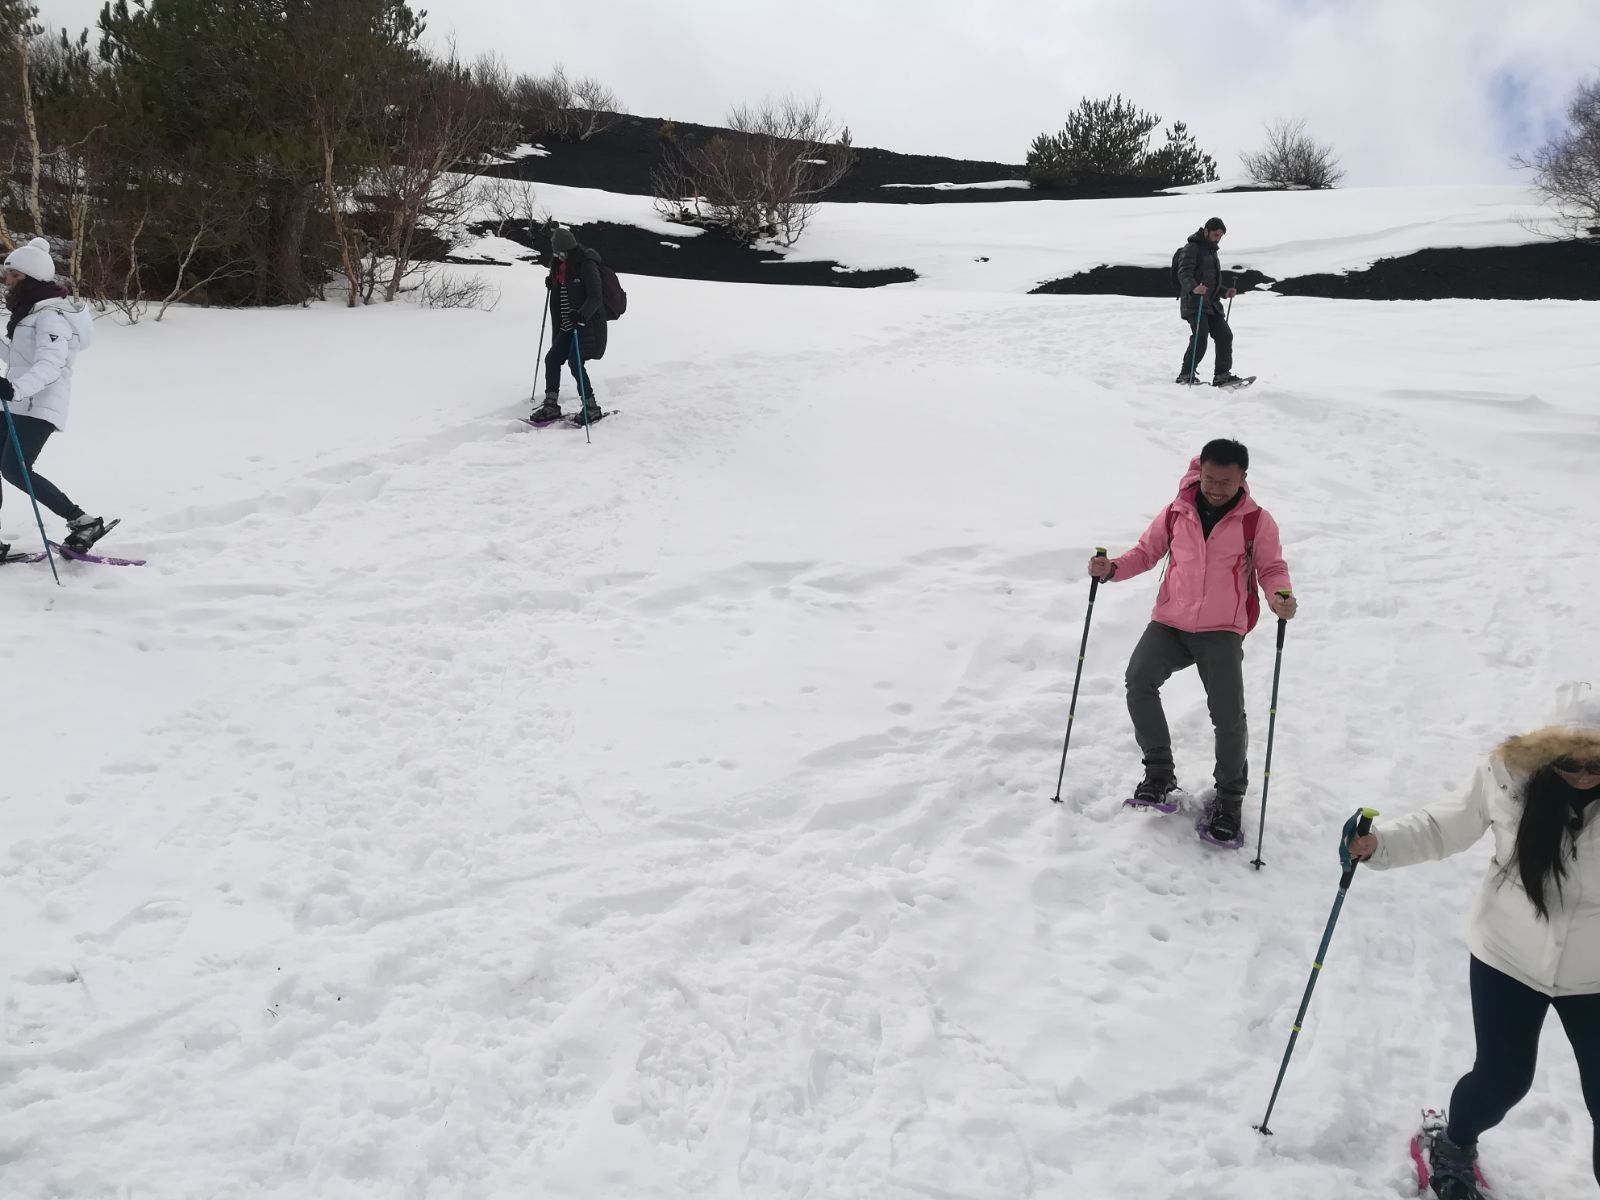 guided tour on etna in winter